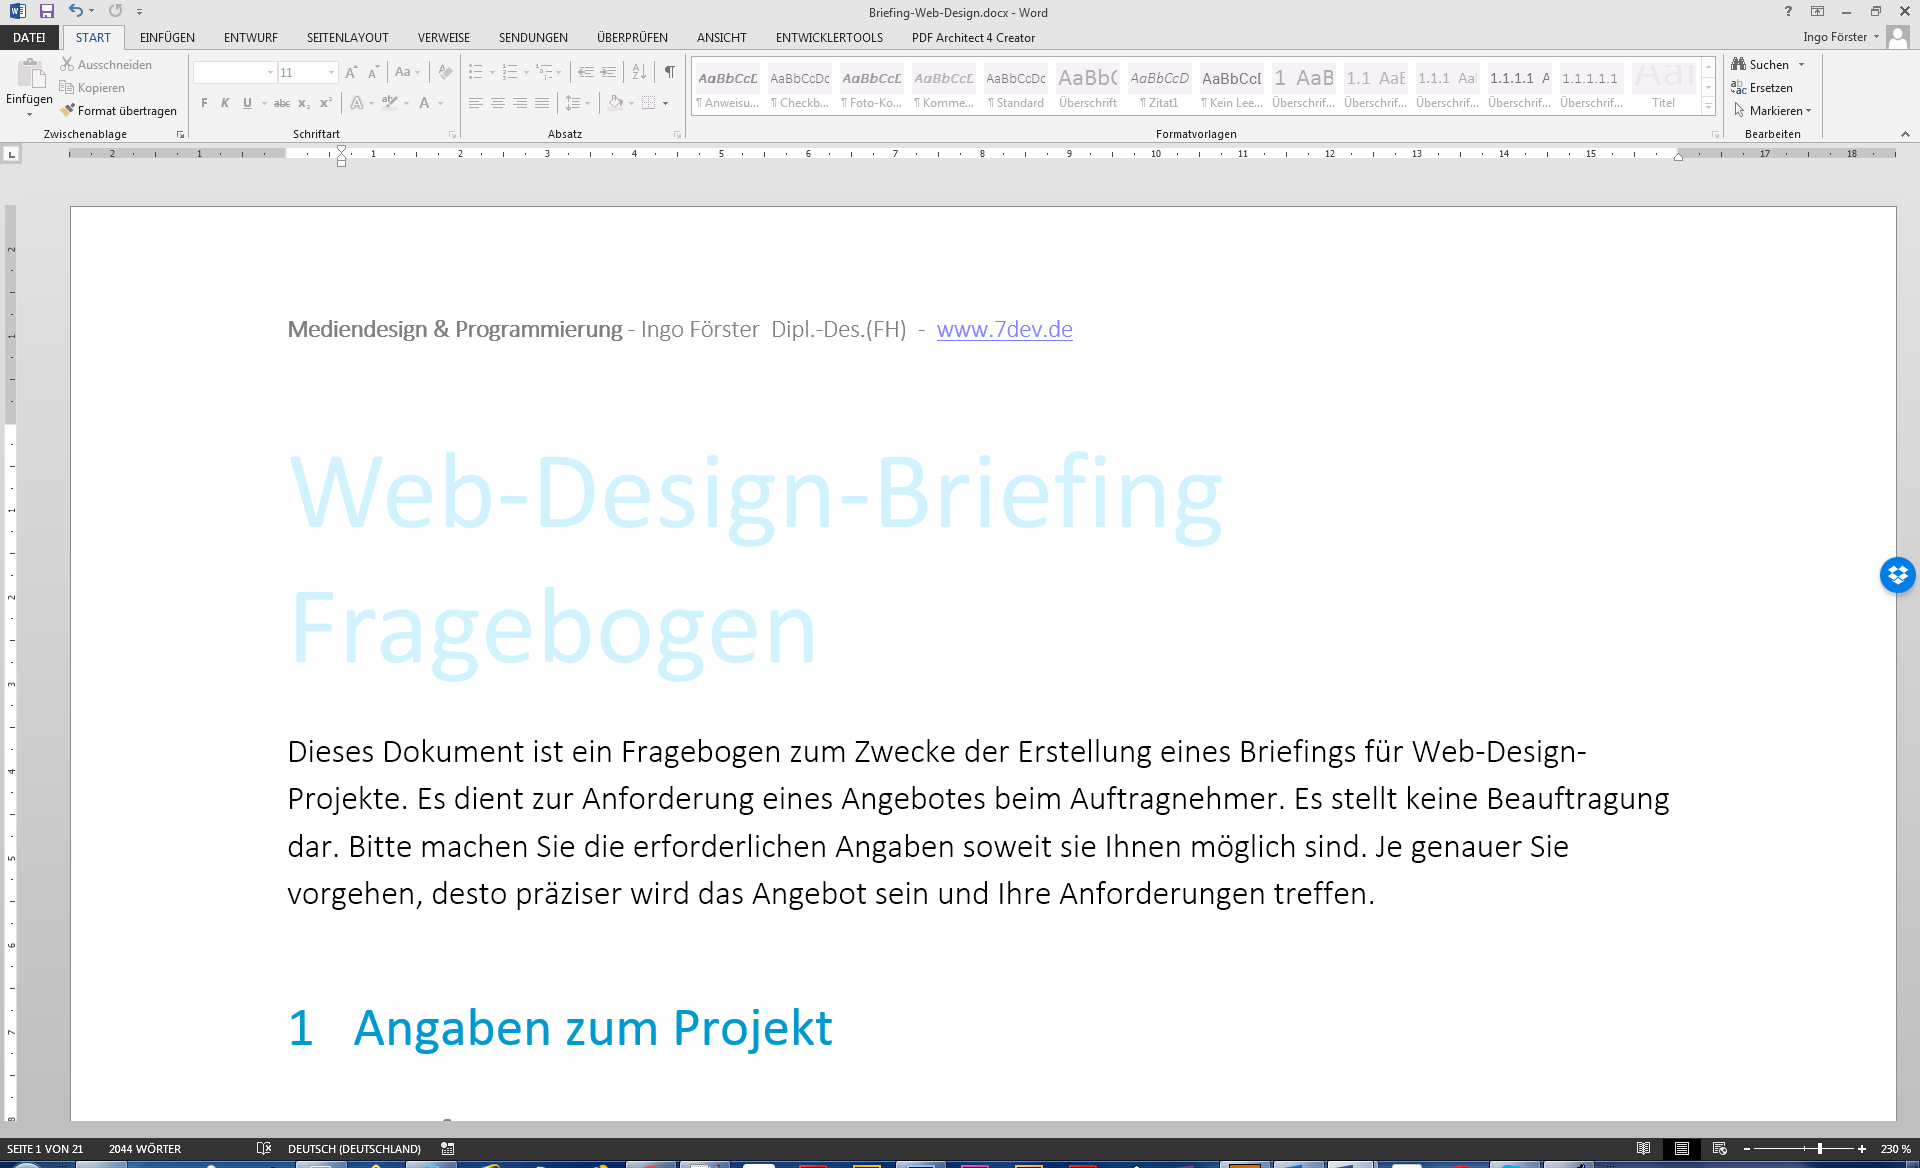 Web-Design-Briefing Word-Vorlage